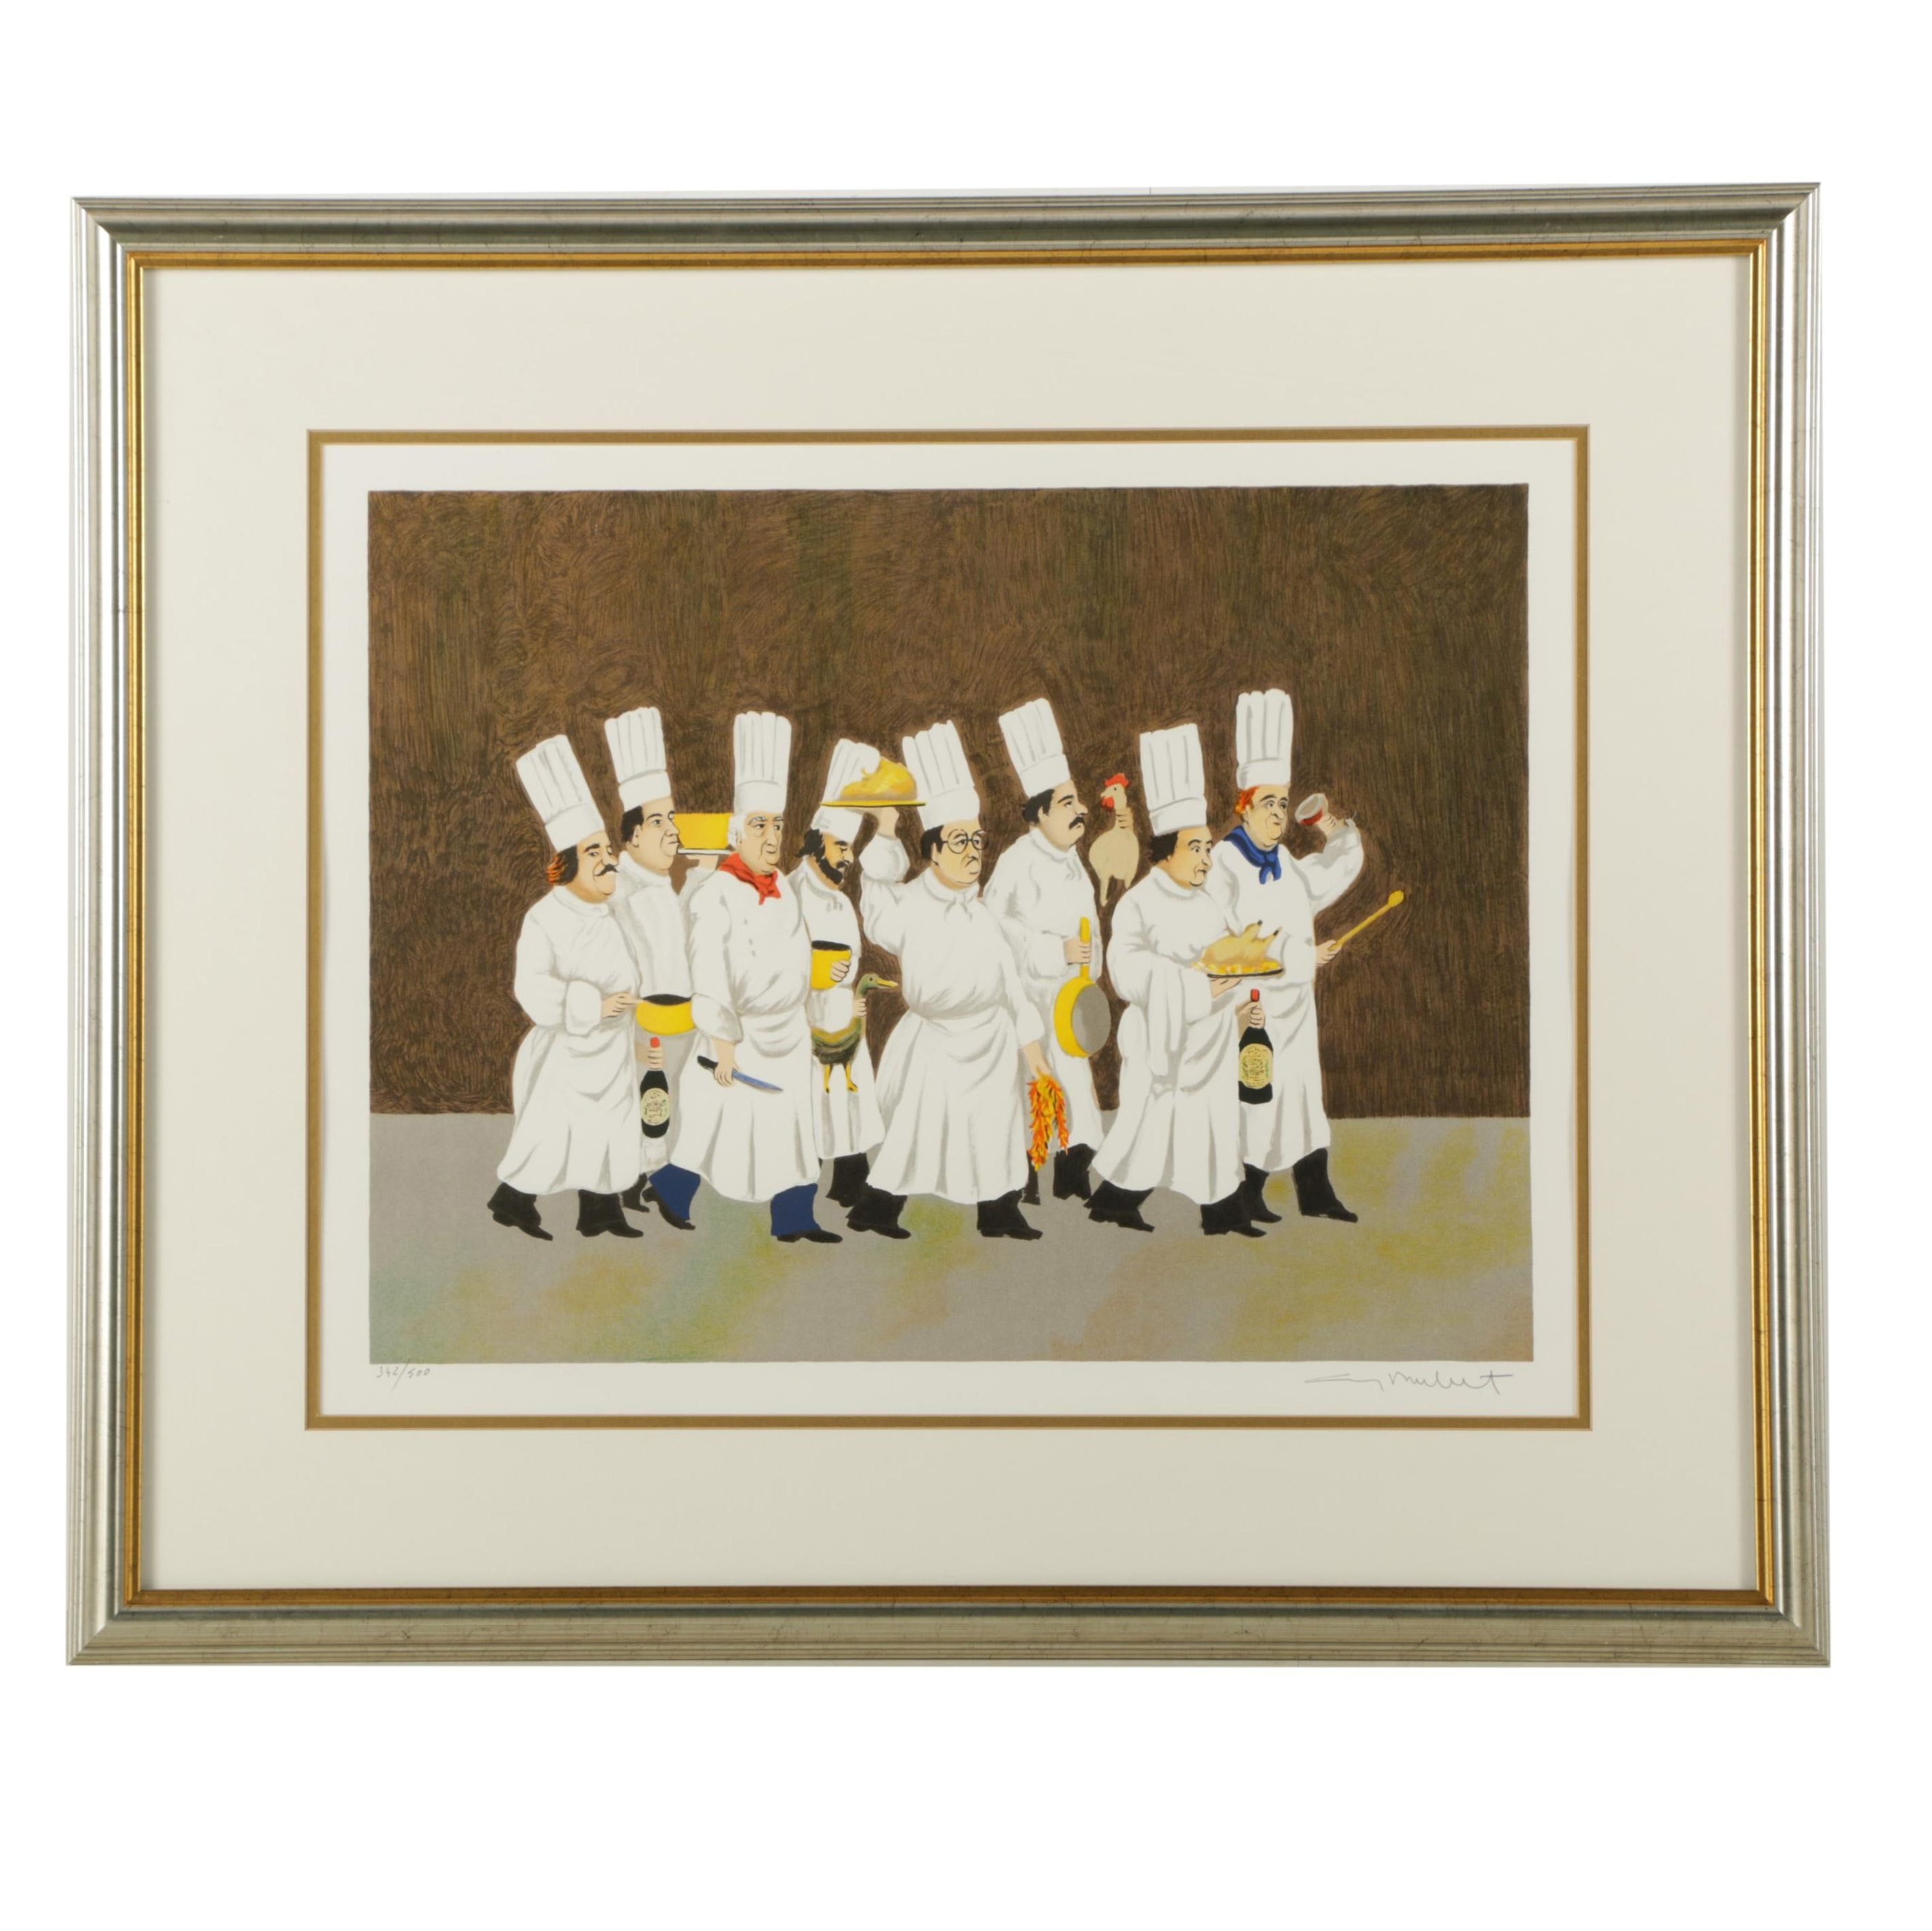 Limited Edition Lithograph on Paper of Chefs after Guy Buffet